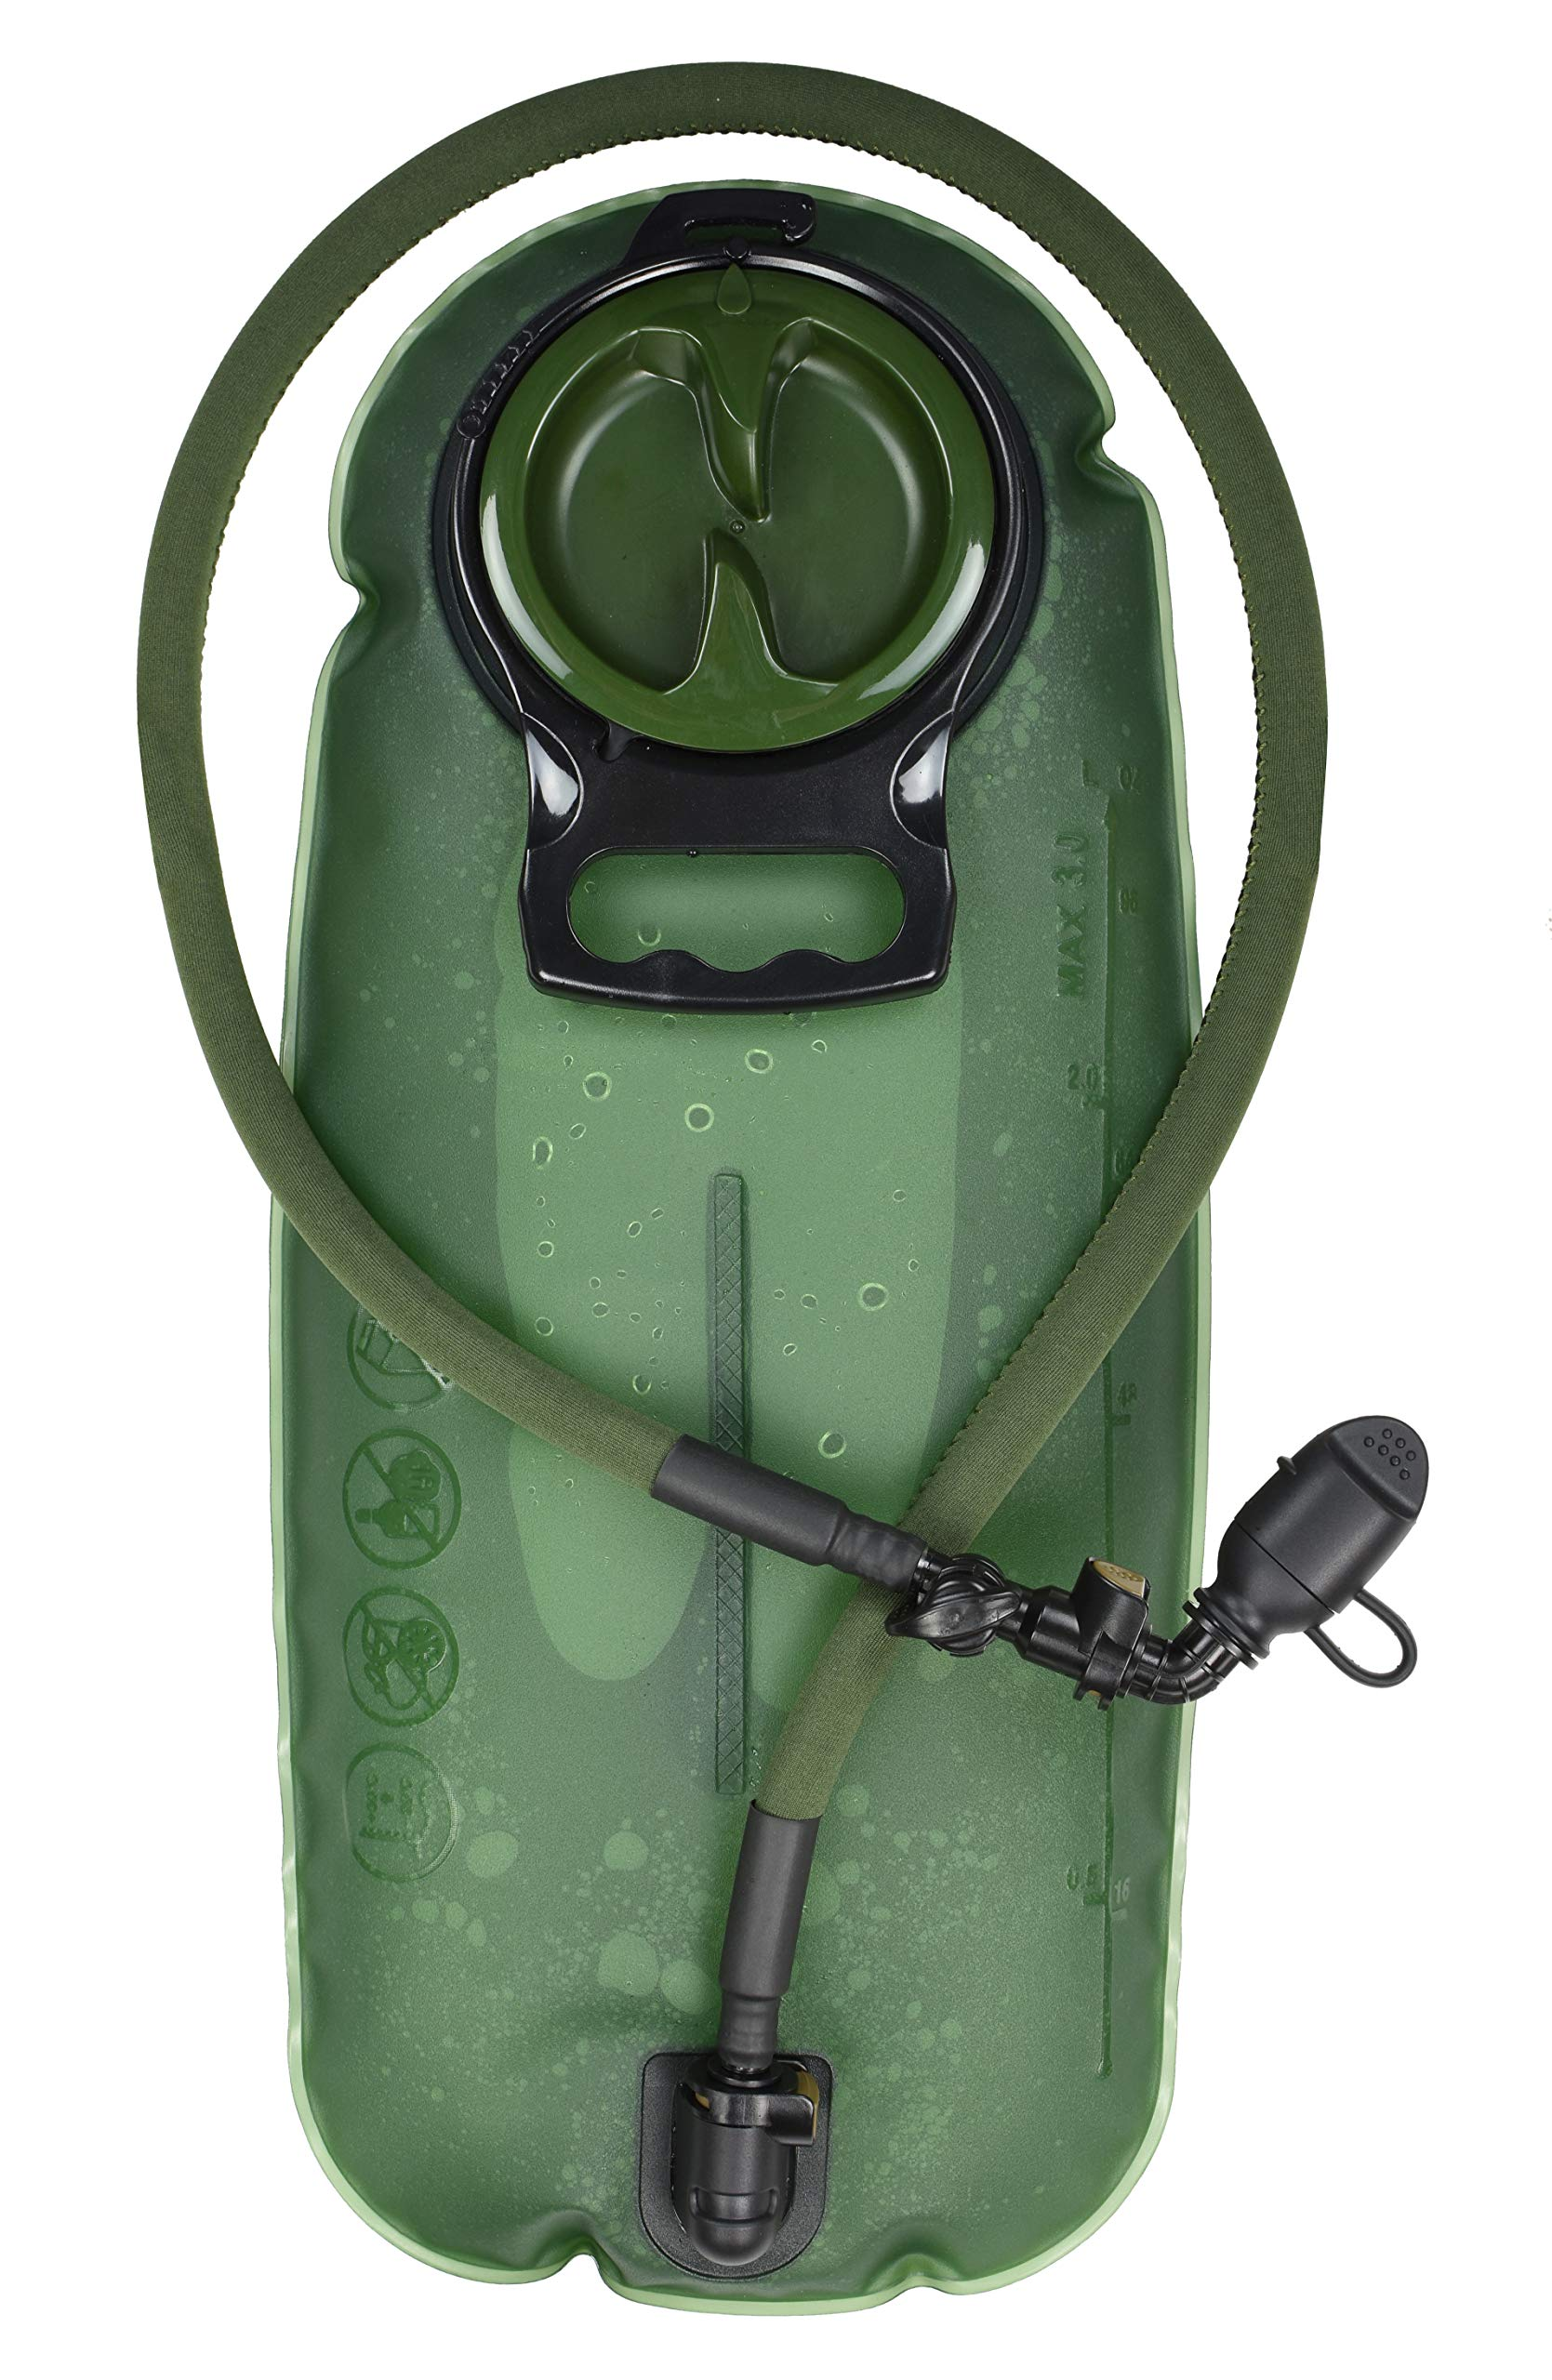 MARCHWAY 2L/2.5L/3L TPU Hydration Bladder, Tasteless BPA Free Water Reservoir Bag with Insulated Tube for Hydration Pack for Cycling, Hiking, Running, Climbing, Biking (3L Green 100oz) by MARCHWAY